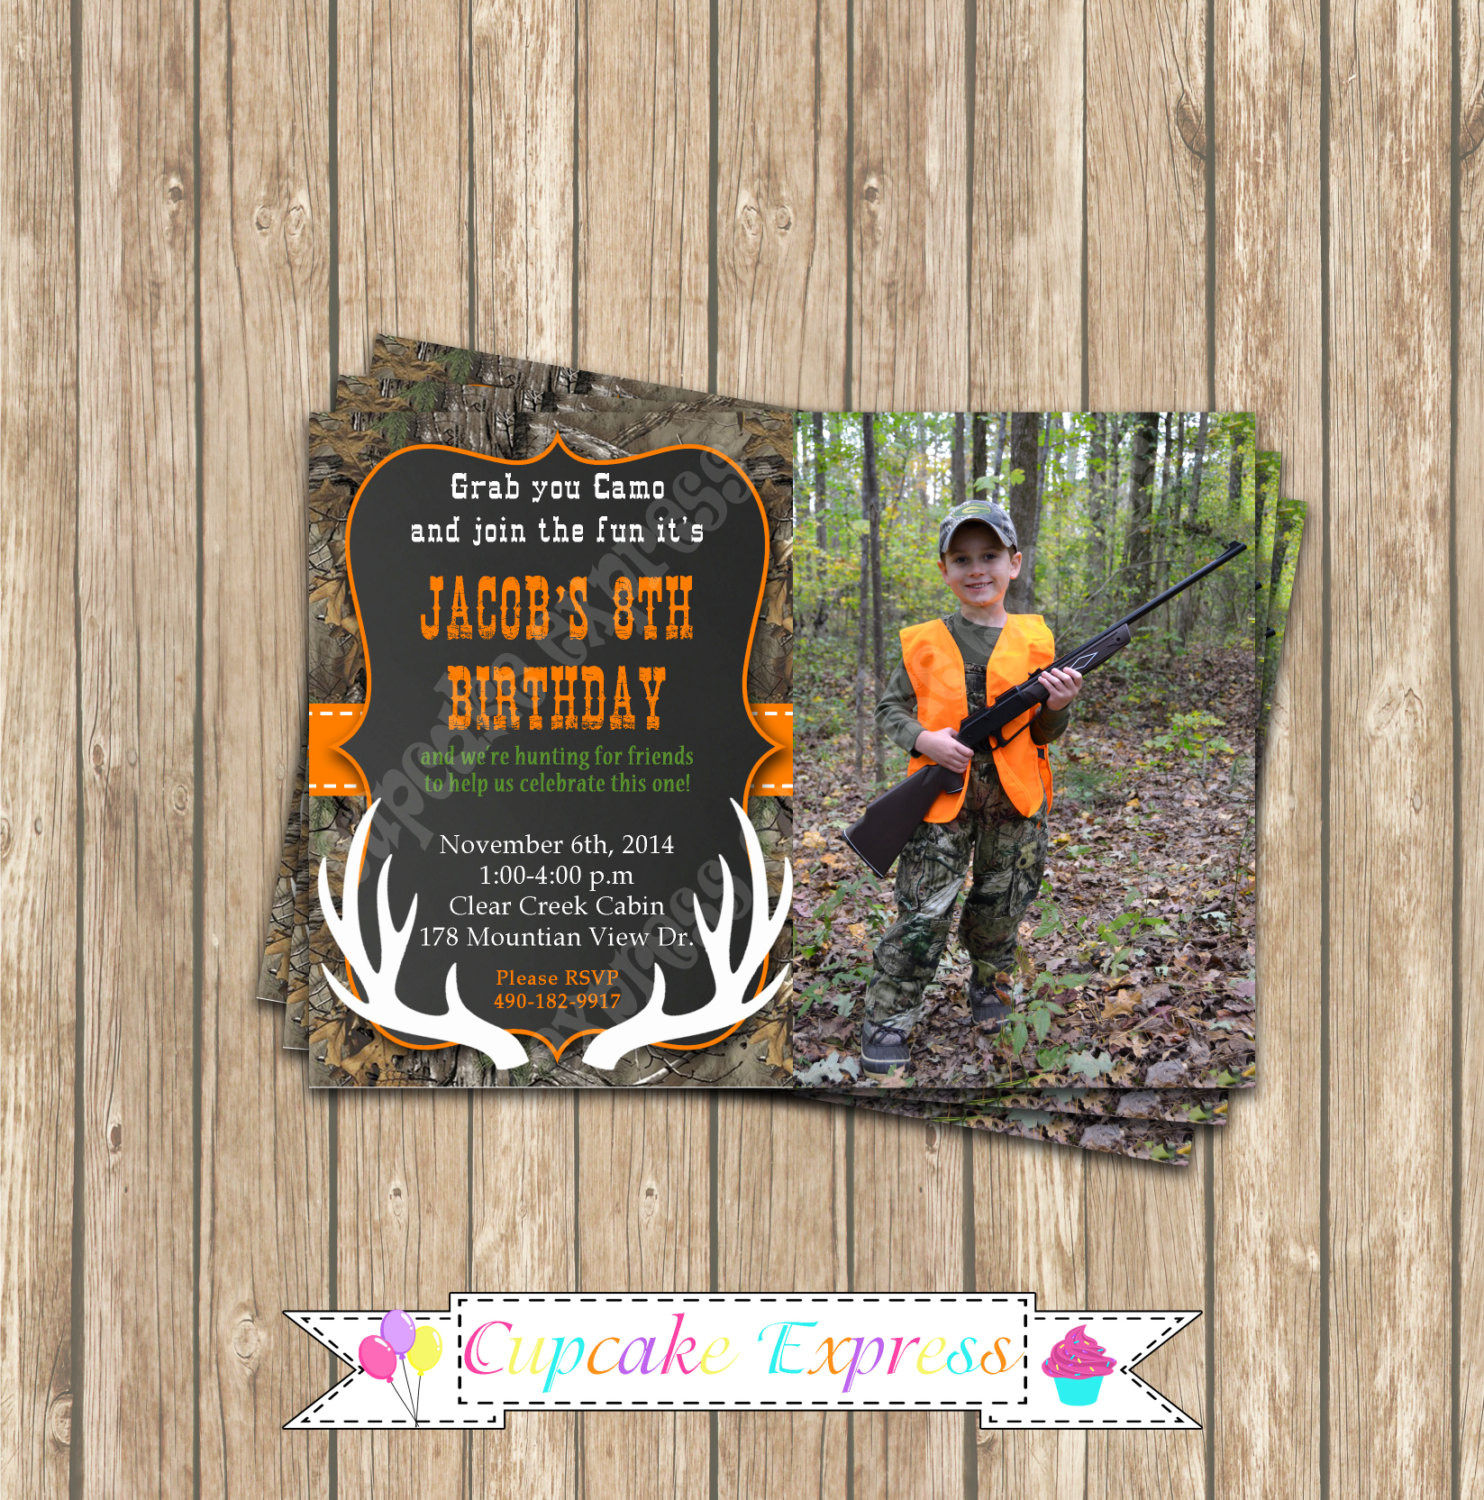 Best ideas about Hunting Birthday Invitations . Save or Pin Camo birthday invitation camo invitation Boy Hunting Now.